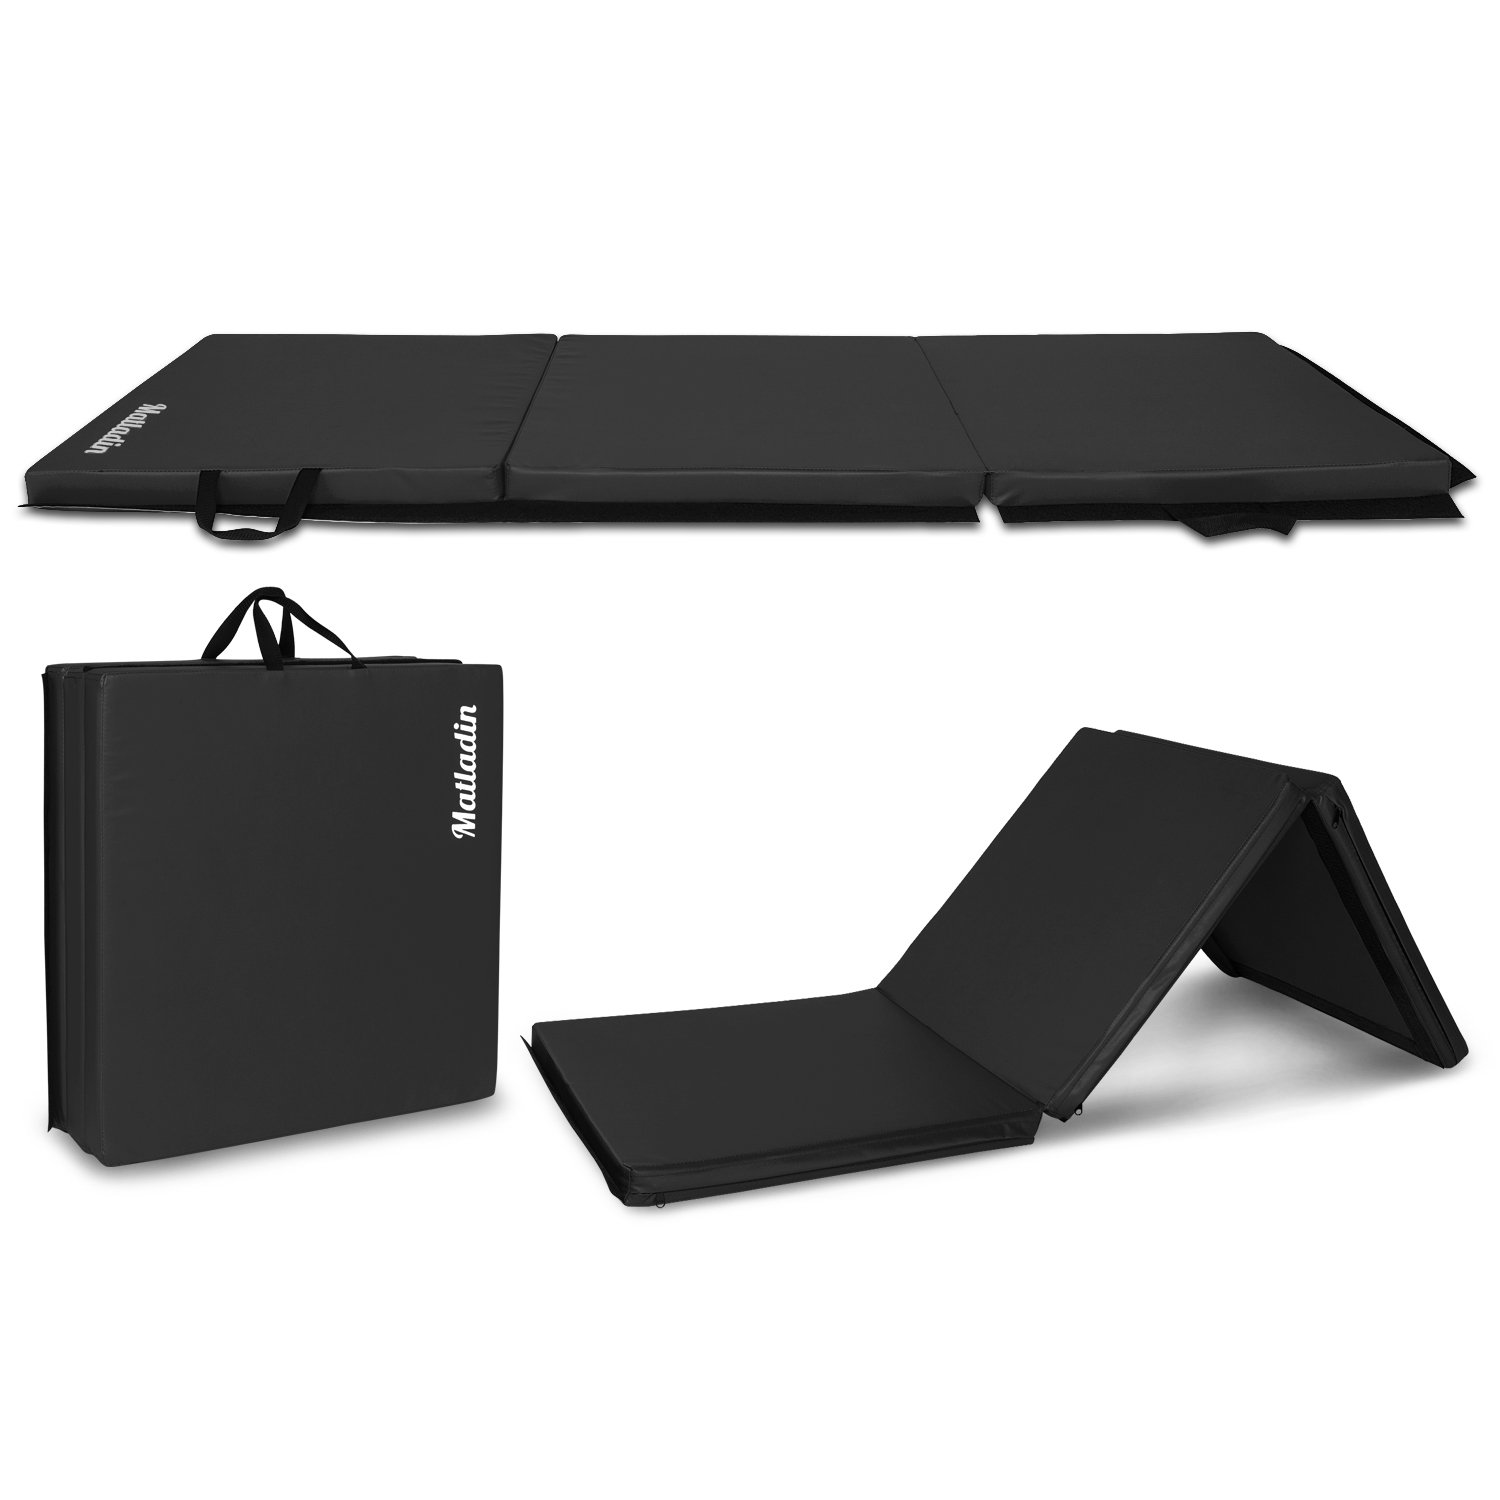 Matladin 6' Folding Tri-fold Gymnastics Gym Exercise Aerobics Mat, 6ft x 2ft x 2in PU Leather Tumbling Mats for Stretching Yoga Cheerleading Martial Arts (Black)